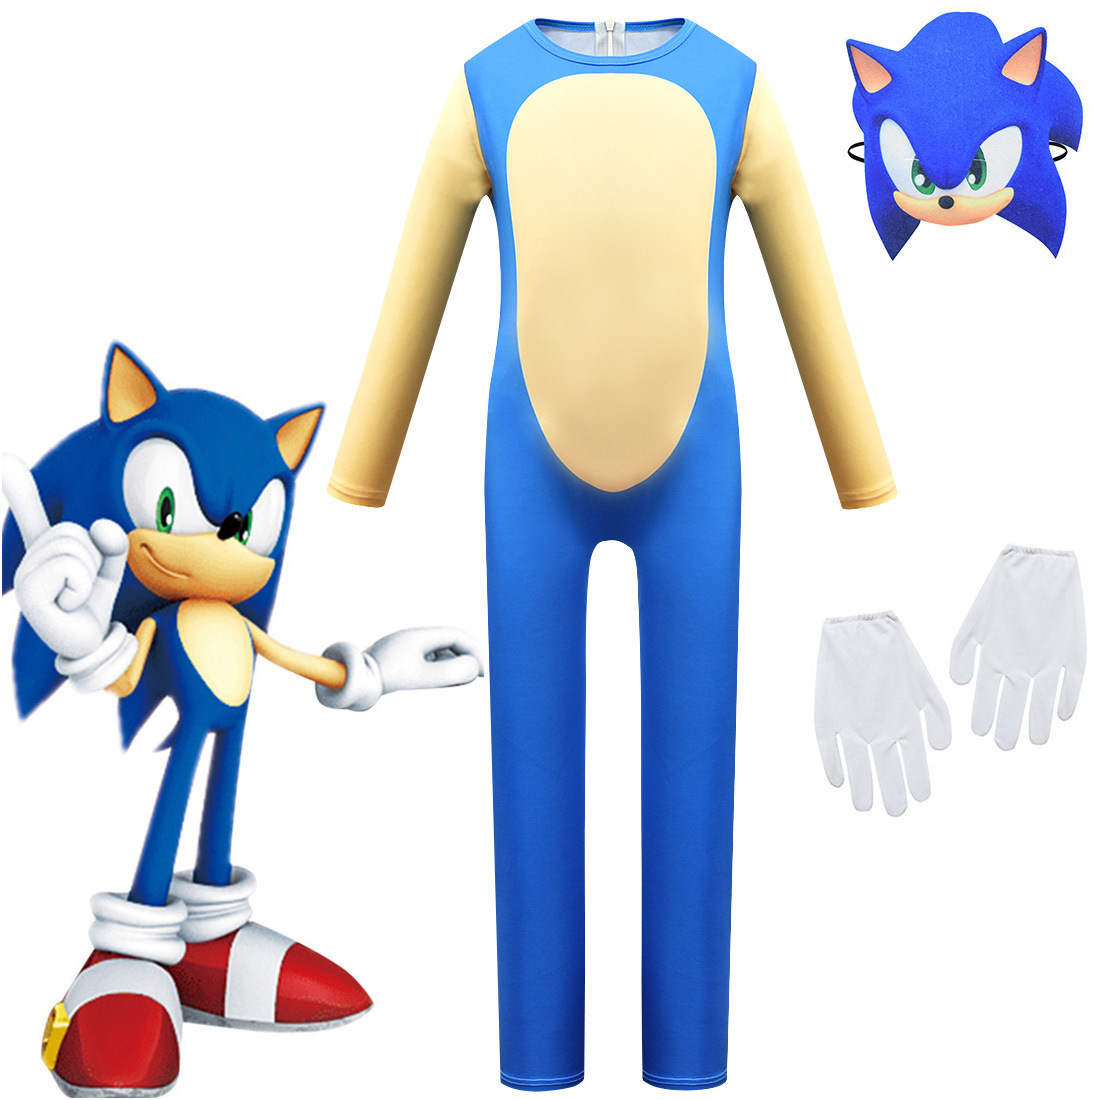 Kids Fancy Sonic The Hedgehog Costume Anime Clothing Children Sonic Party Cosplay Halloween Costume Sonic For Boys Clothing Sets Aliexpress